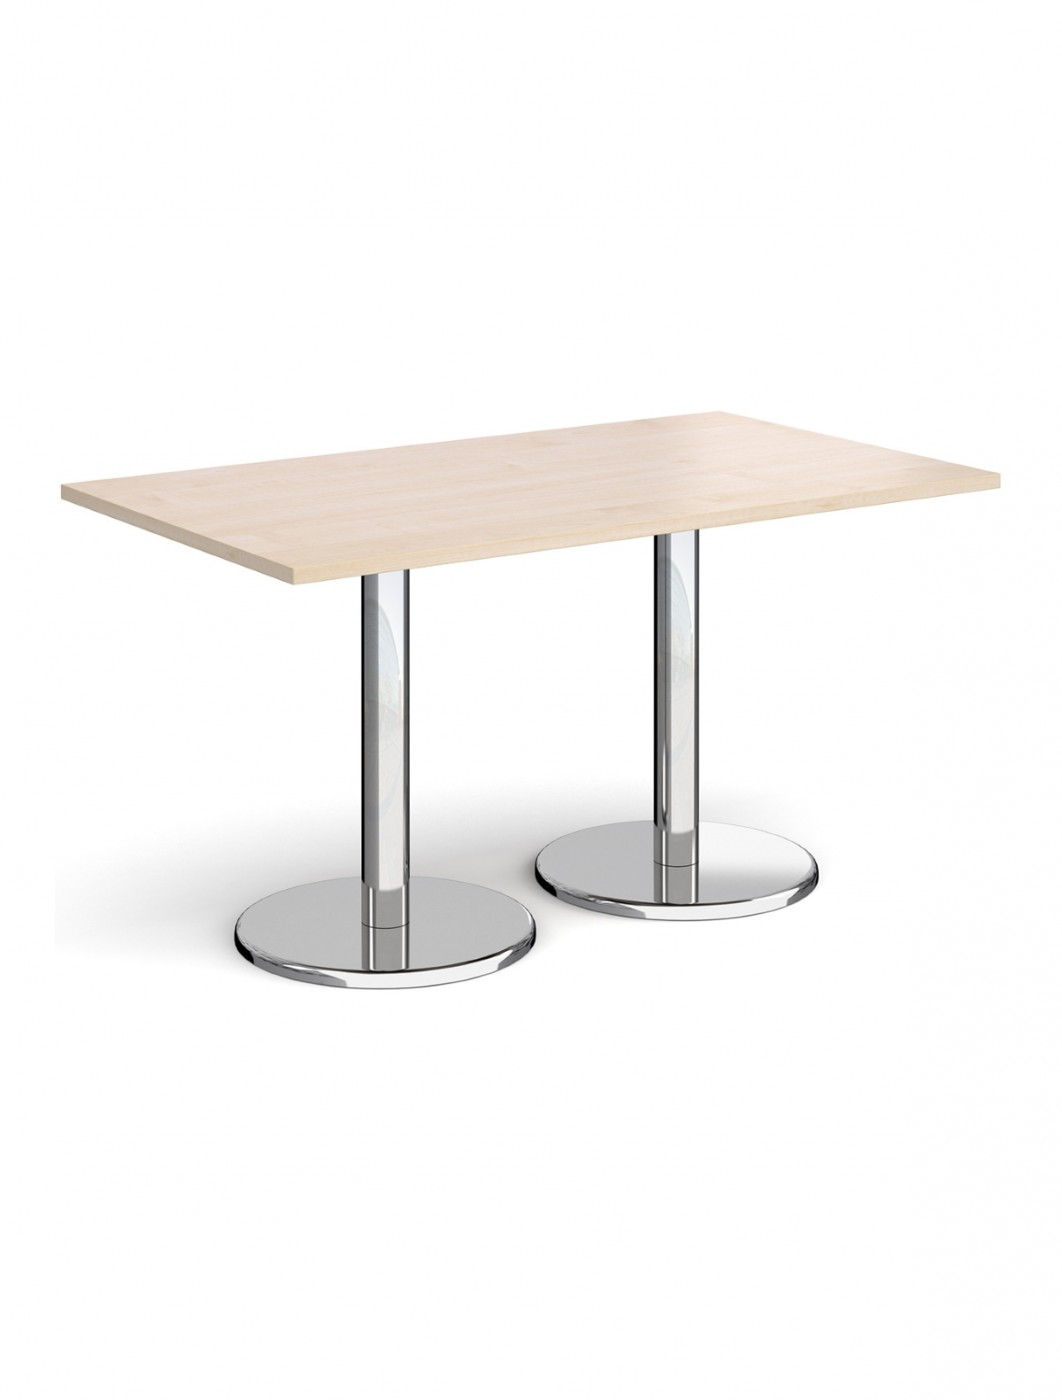 Rectangular Dining Table Pisa 1400mm PDR1400 by Dams